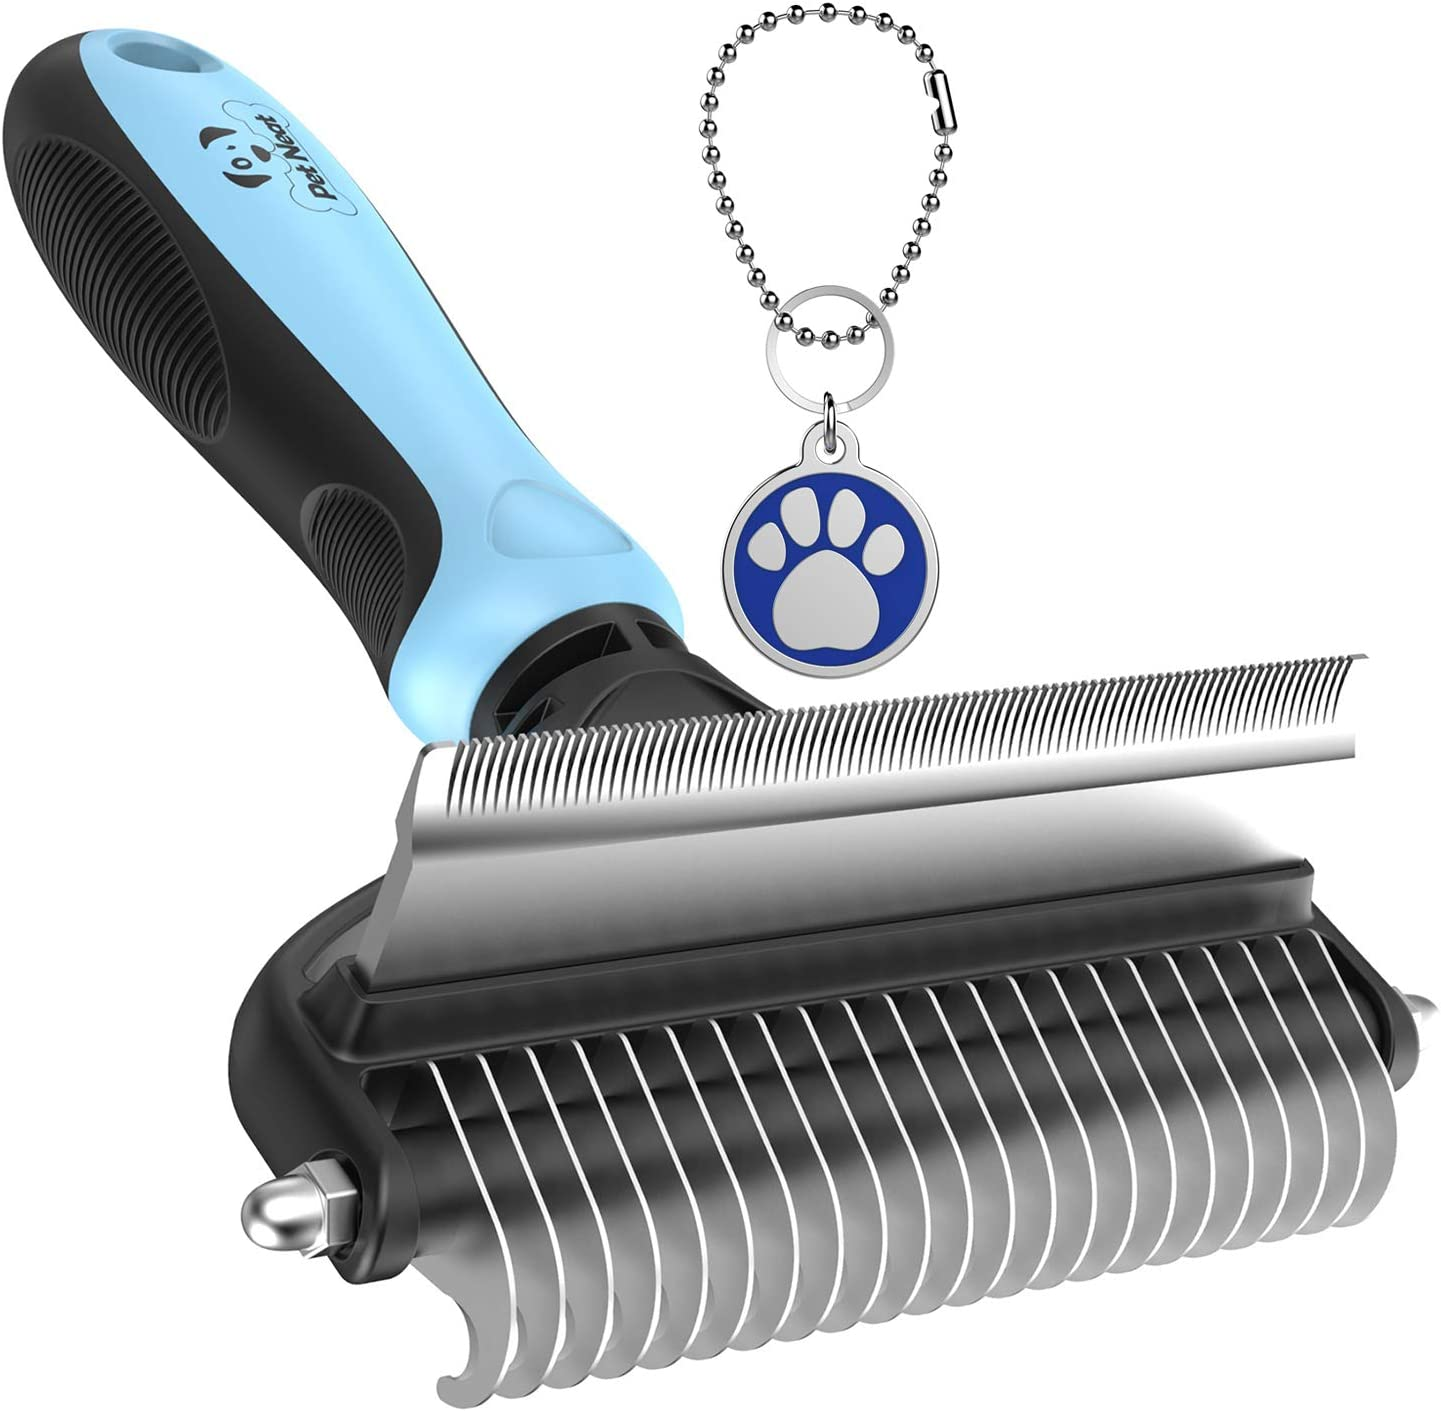 Dog Brush and Cat Brush – 2 Sided Pet Grooming Tool for Deshedding, Mats & Tangles Removing – No More Nasty Shedding and Flying Hair